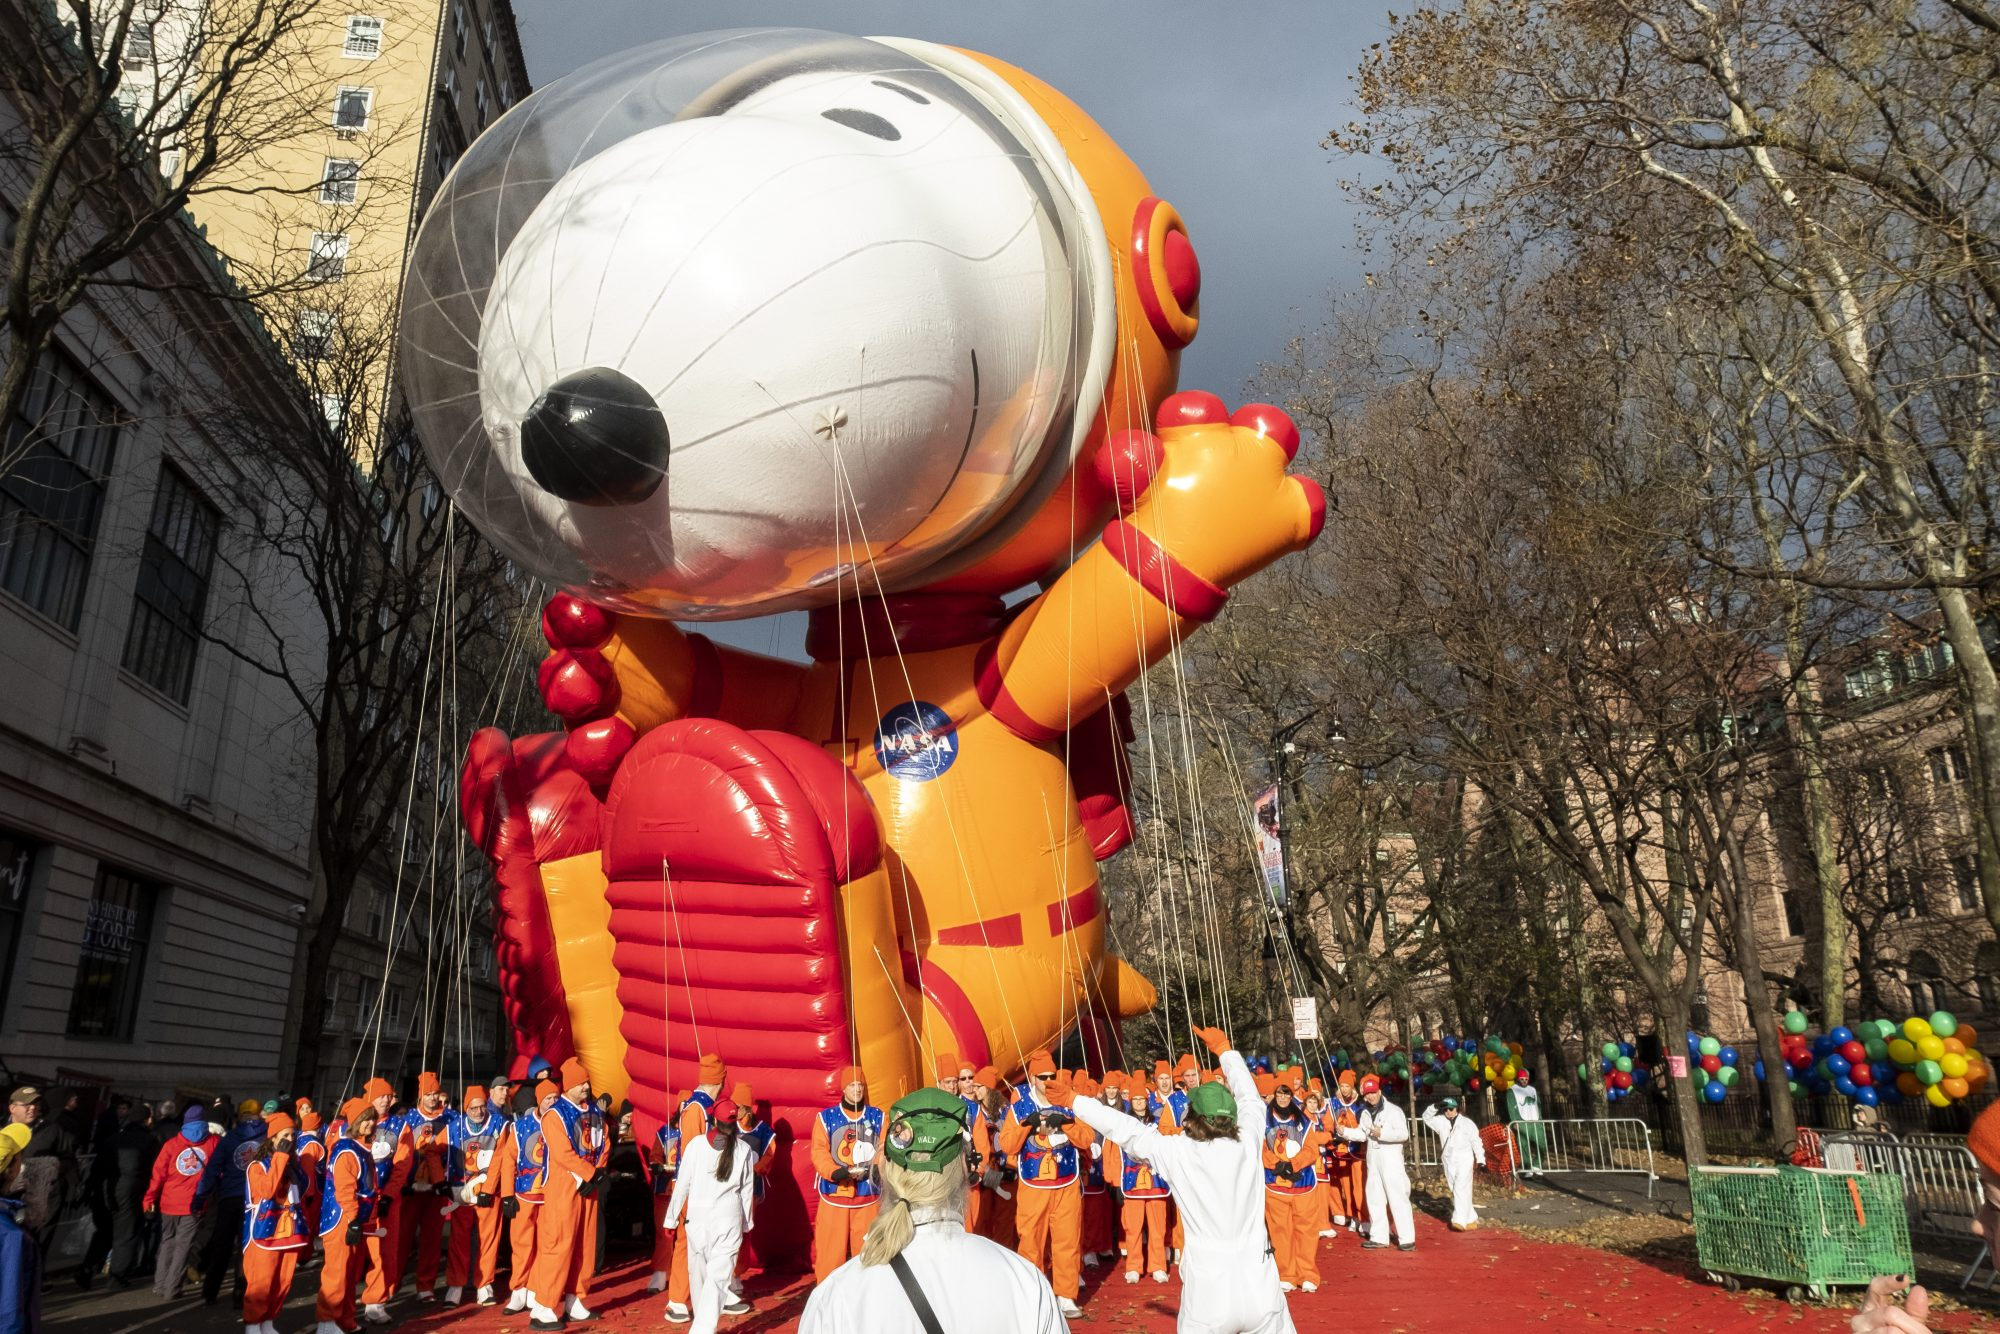 Macy's Thanksgiving Day Parade - LEAD